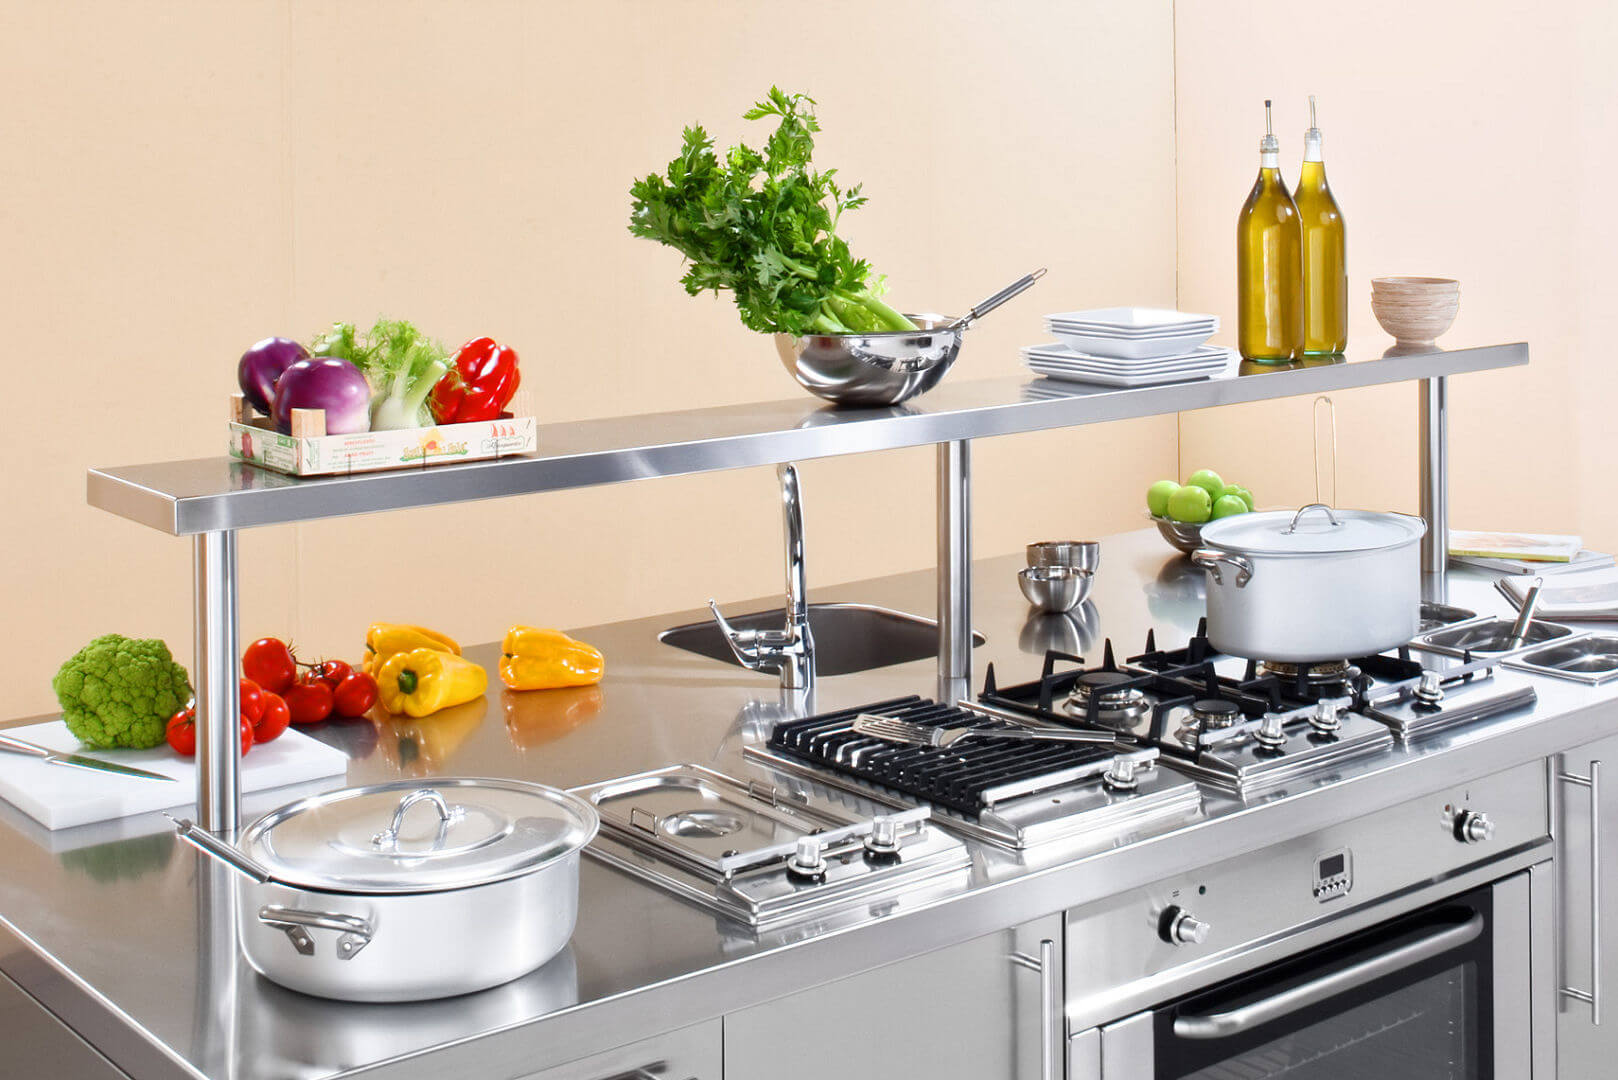 Arca Cucine Italy - Domestic stainless steel kitchens - Workstation - Shelf support